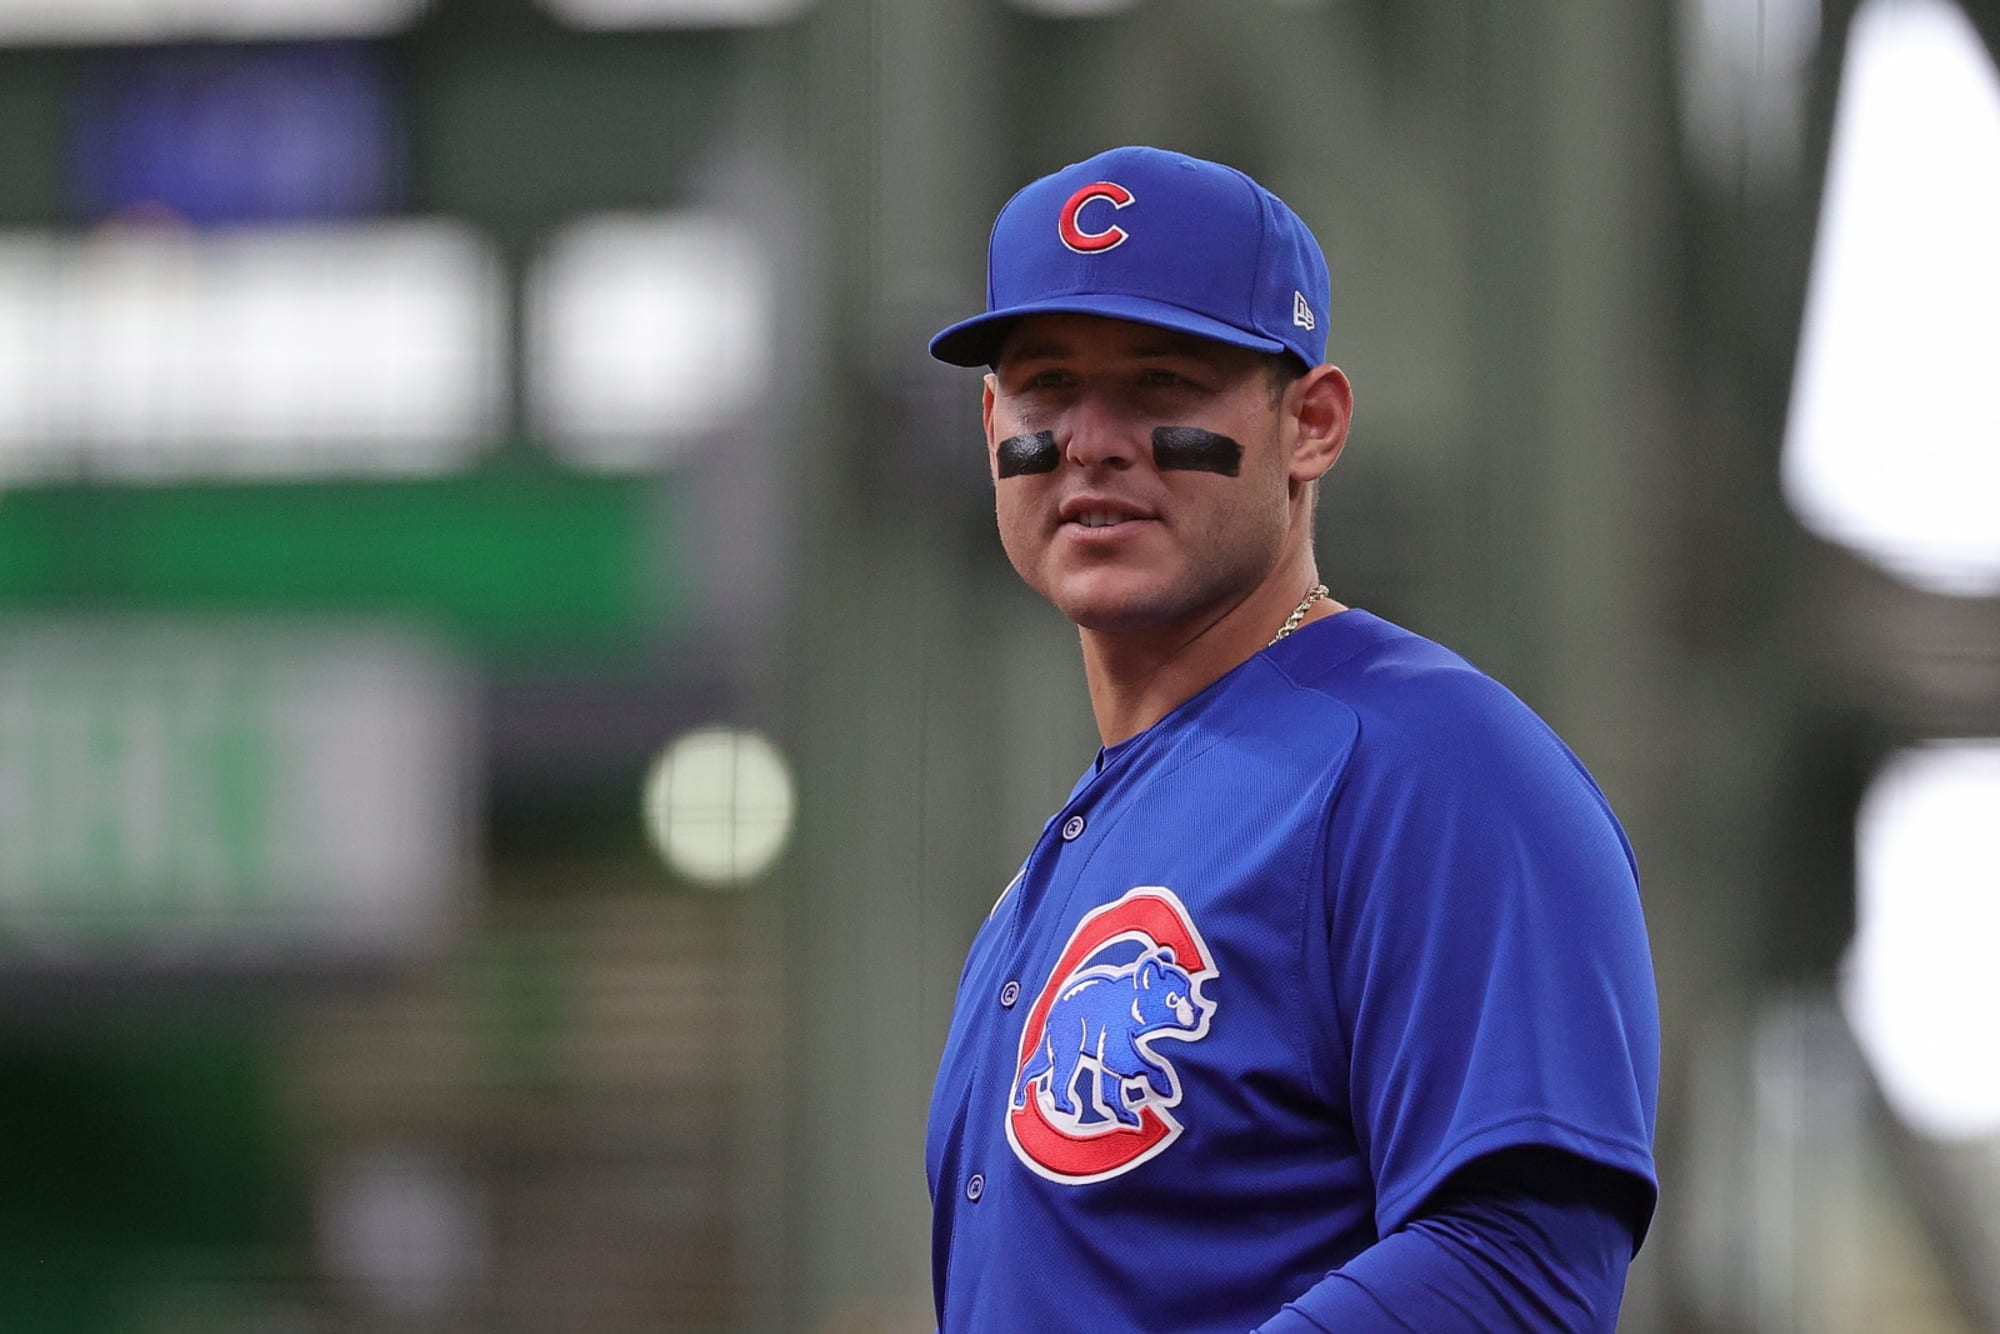 Cubs: Patience has an expiration date even if losing does not